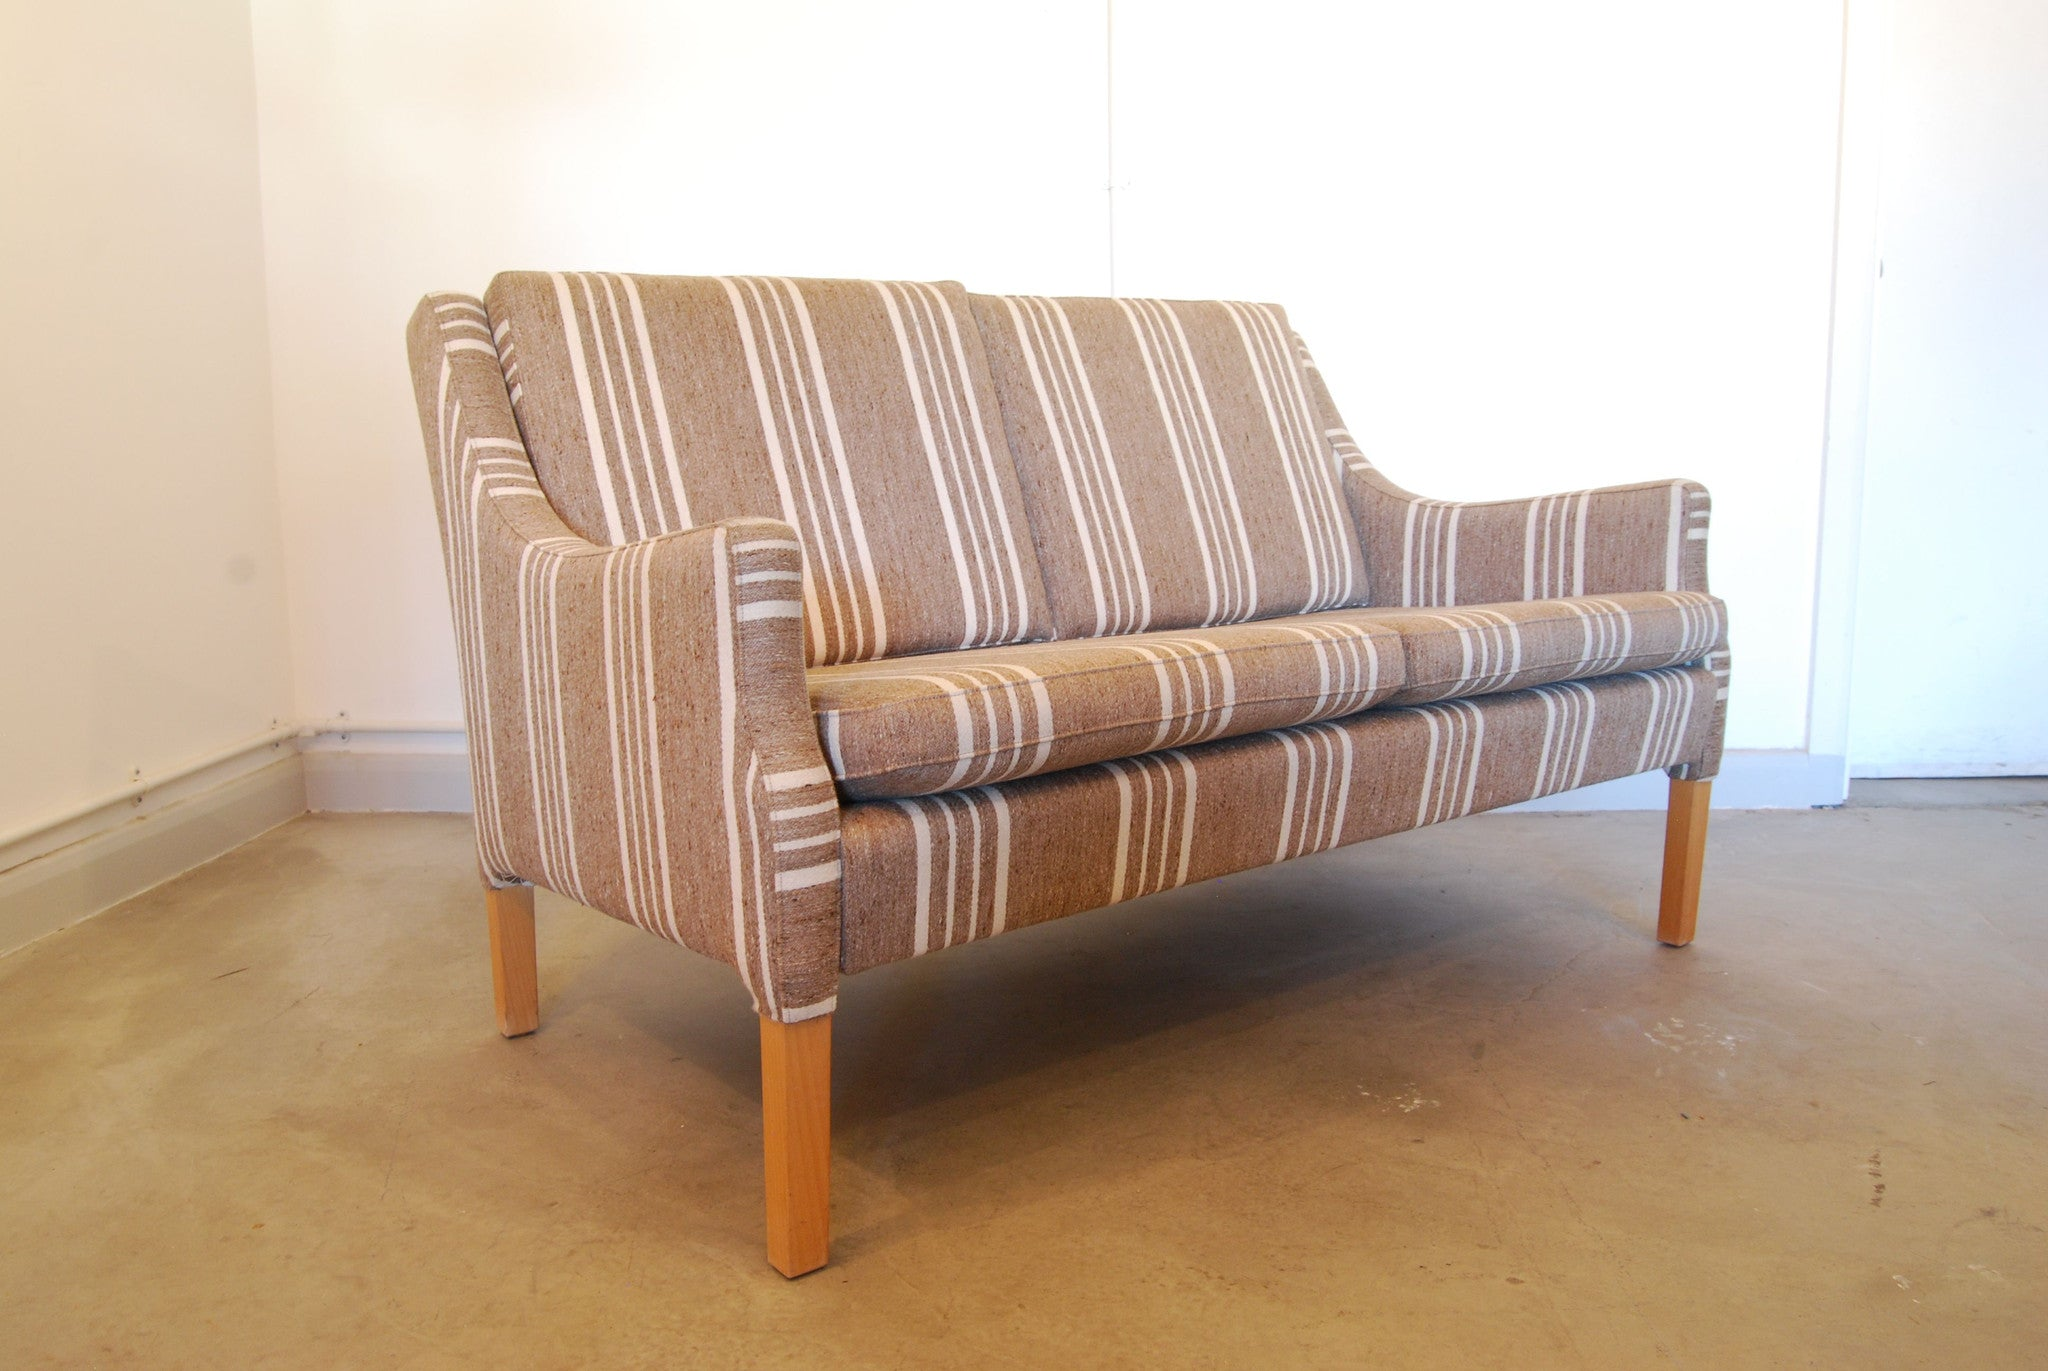 Chase & Sorensen Two seater in striped wool